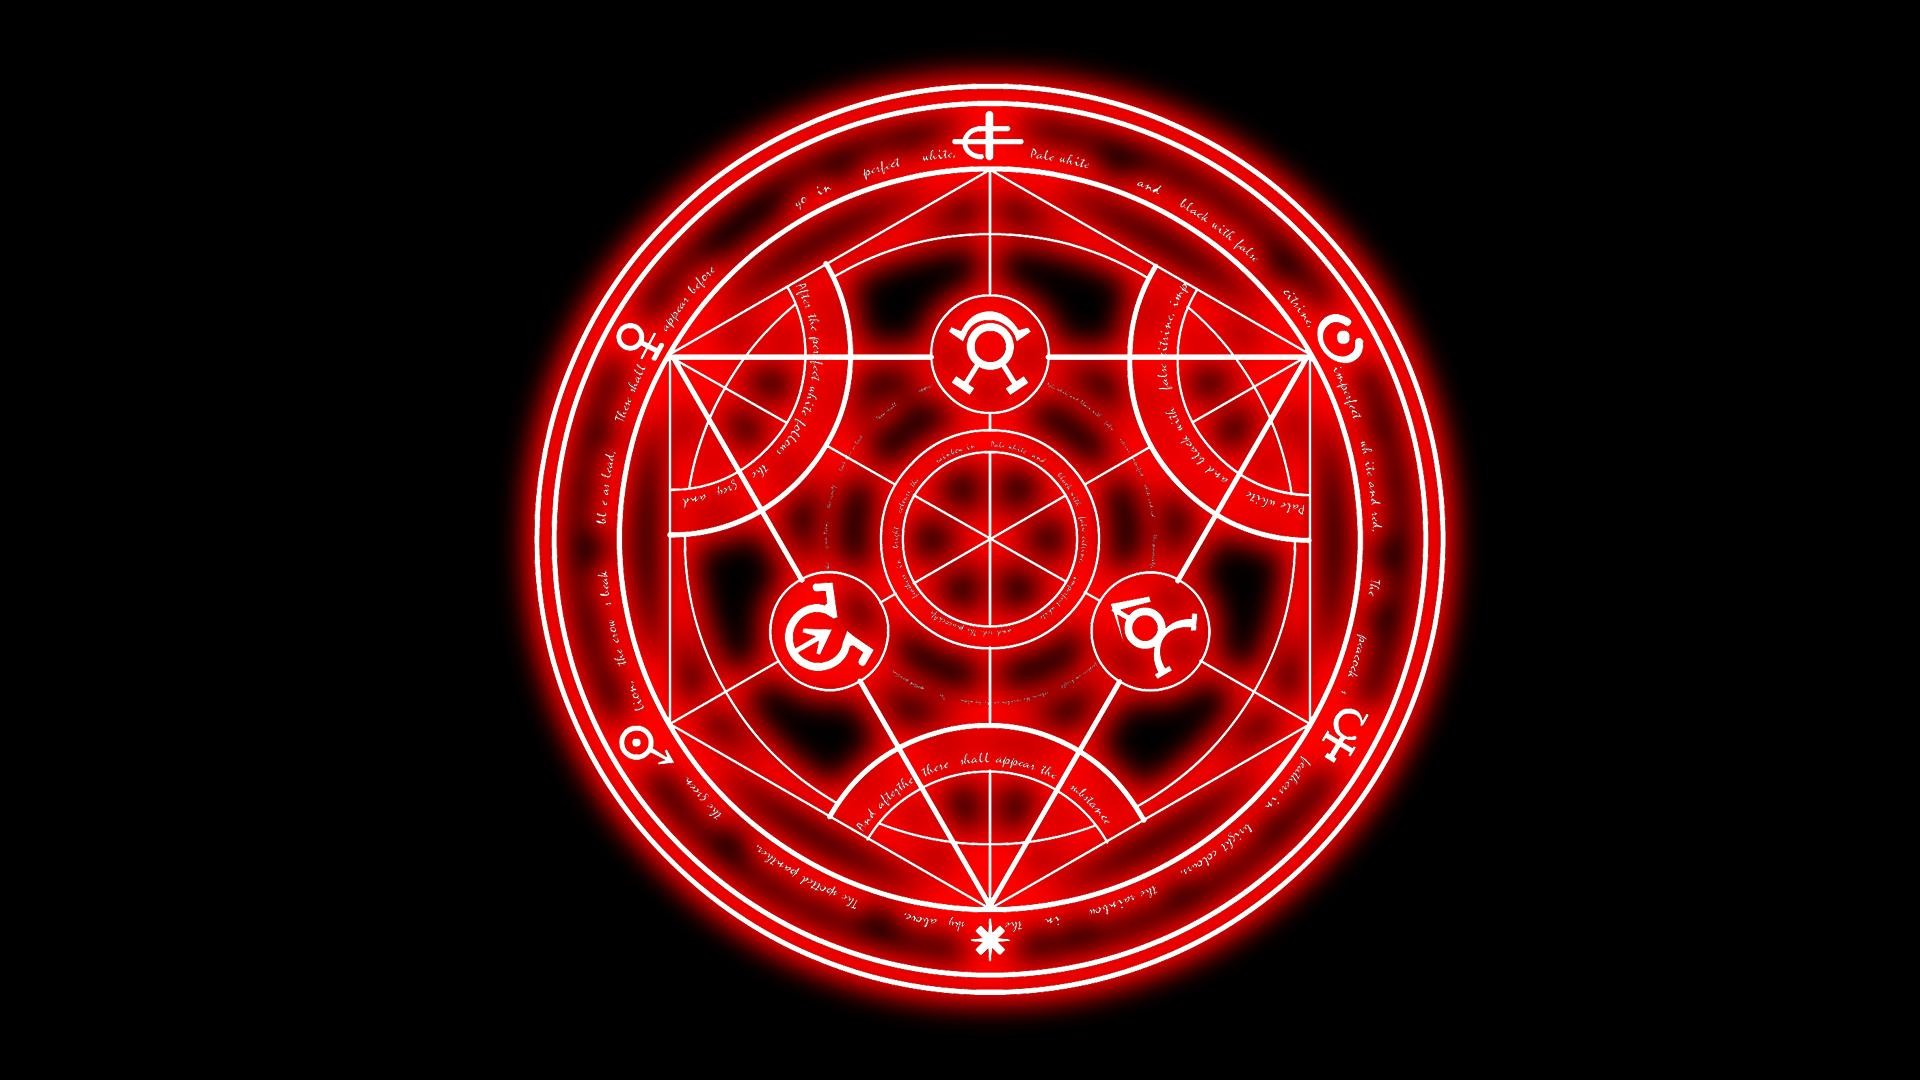 fullmetal alchemist wallpaper ·① download free stunning high